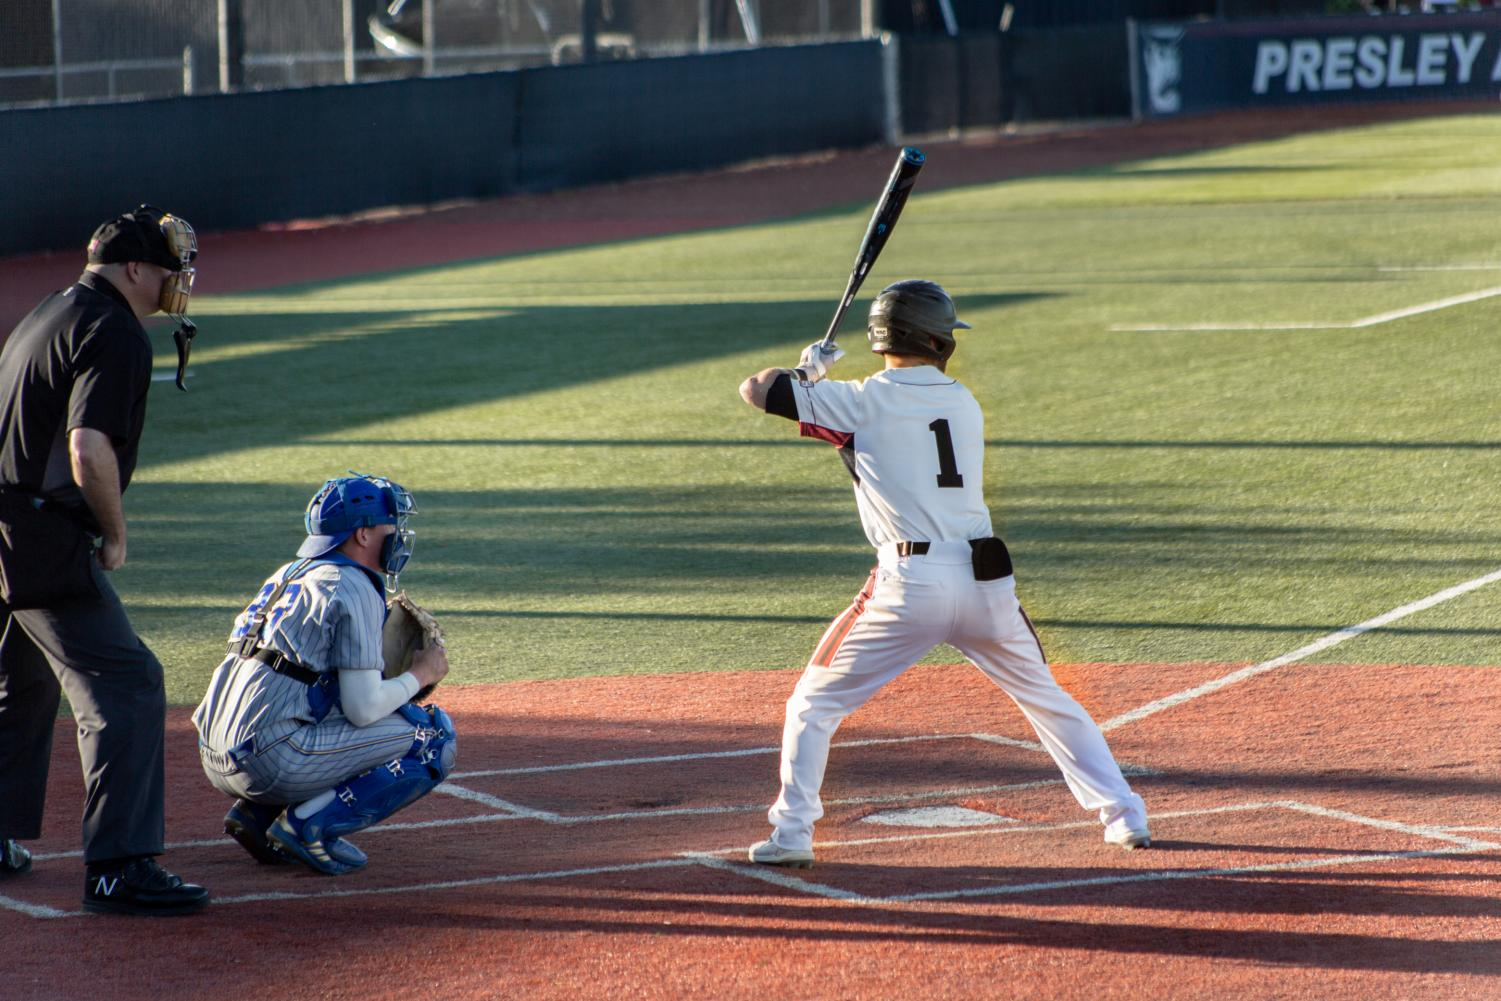 New Mexico State struggled on offense in their conference opener to CSUB Friday night, scoring under five runs for just the fourth time this season.